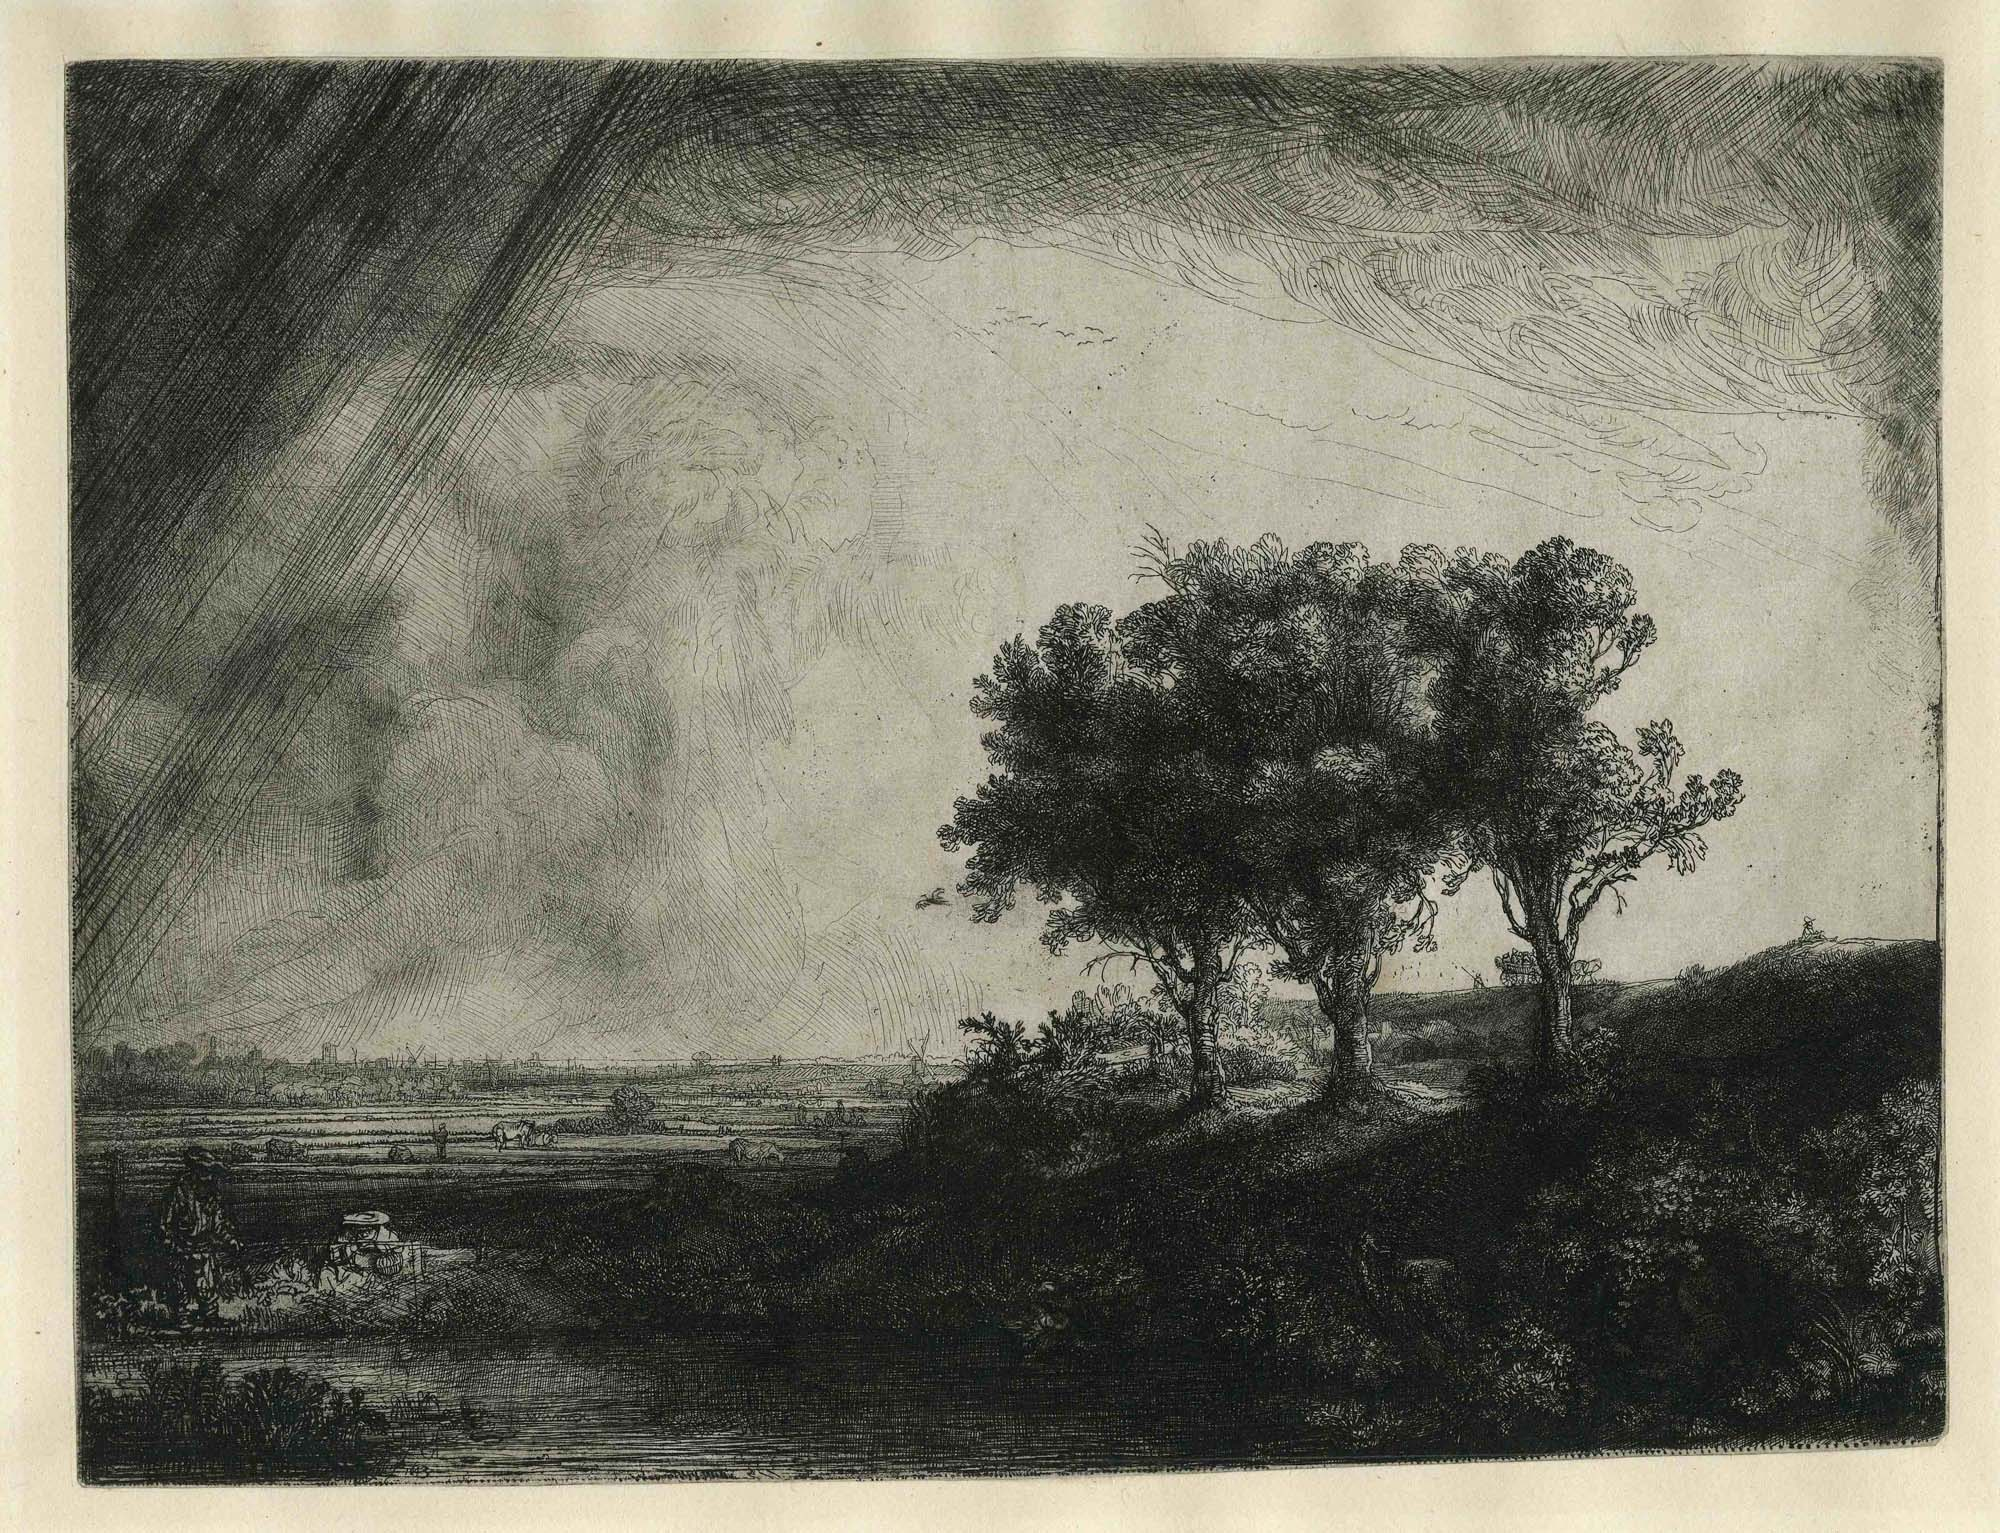 an etching by Rembrandt of trees in a landscape